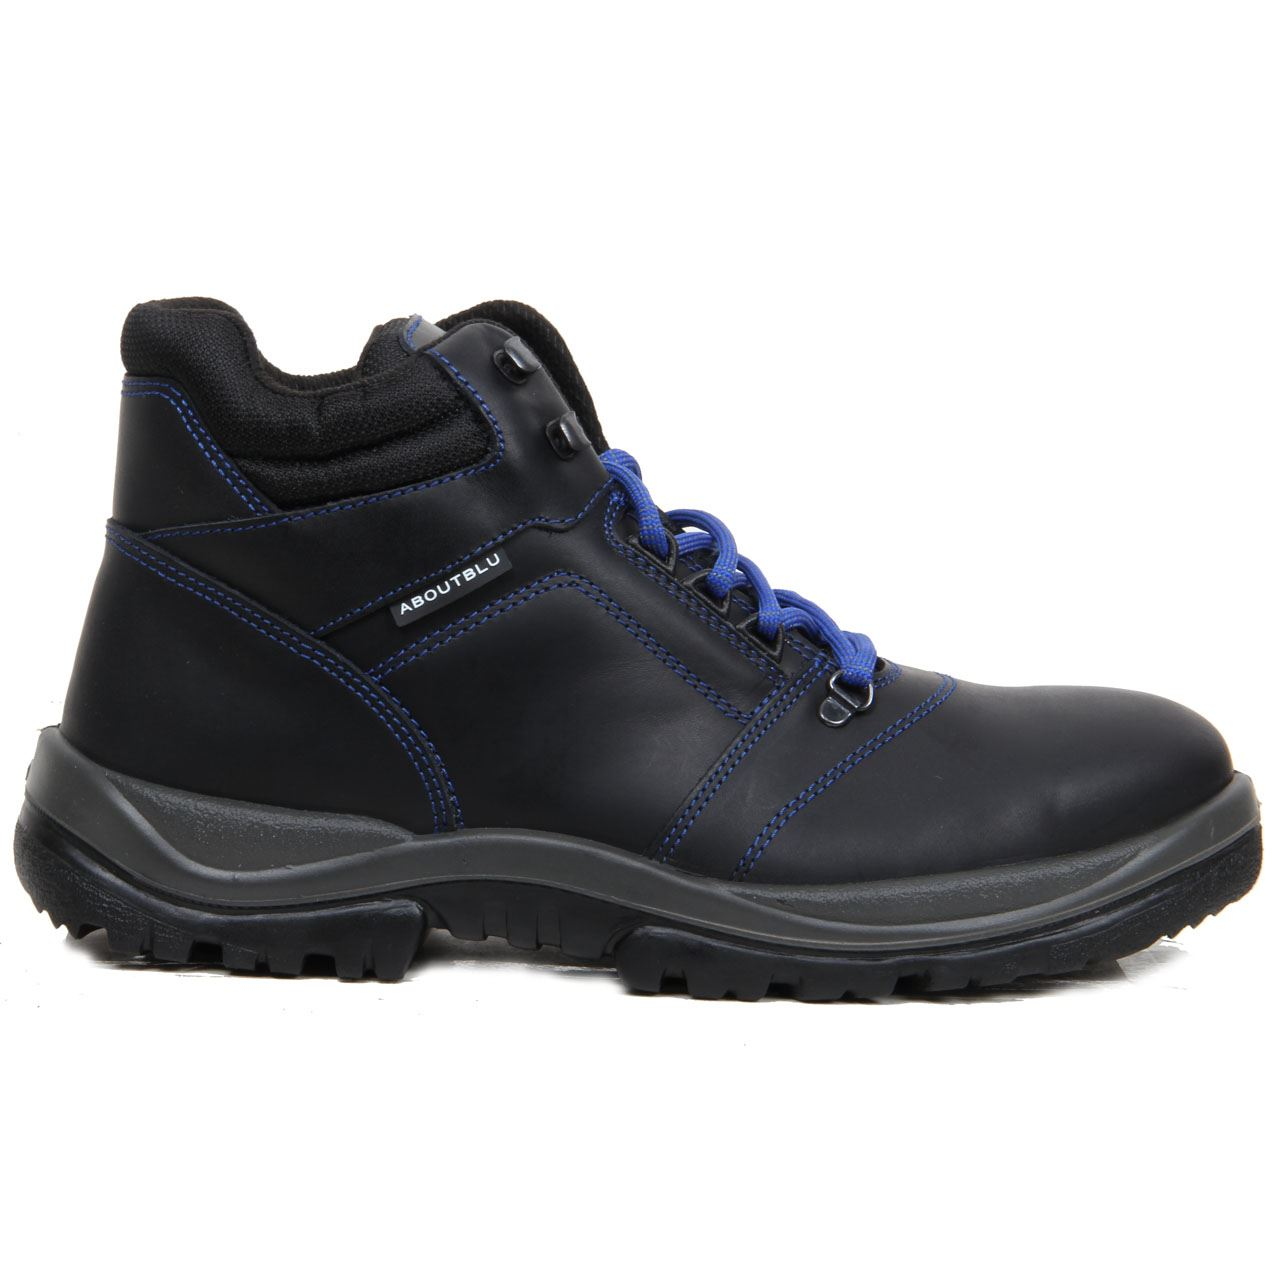 Mens Safety Shoes Leather Work Boots Steel Toe Cap ...